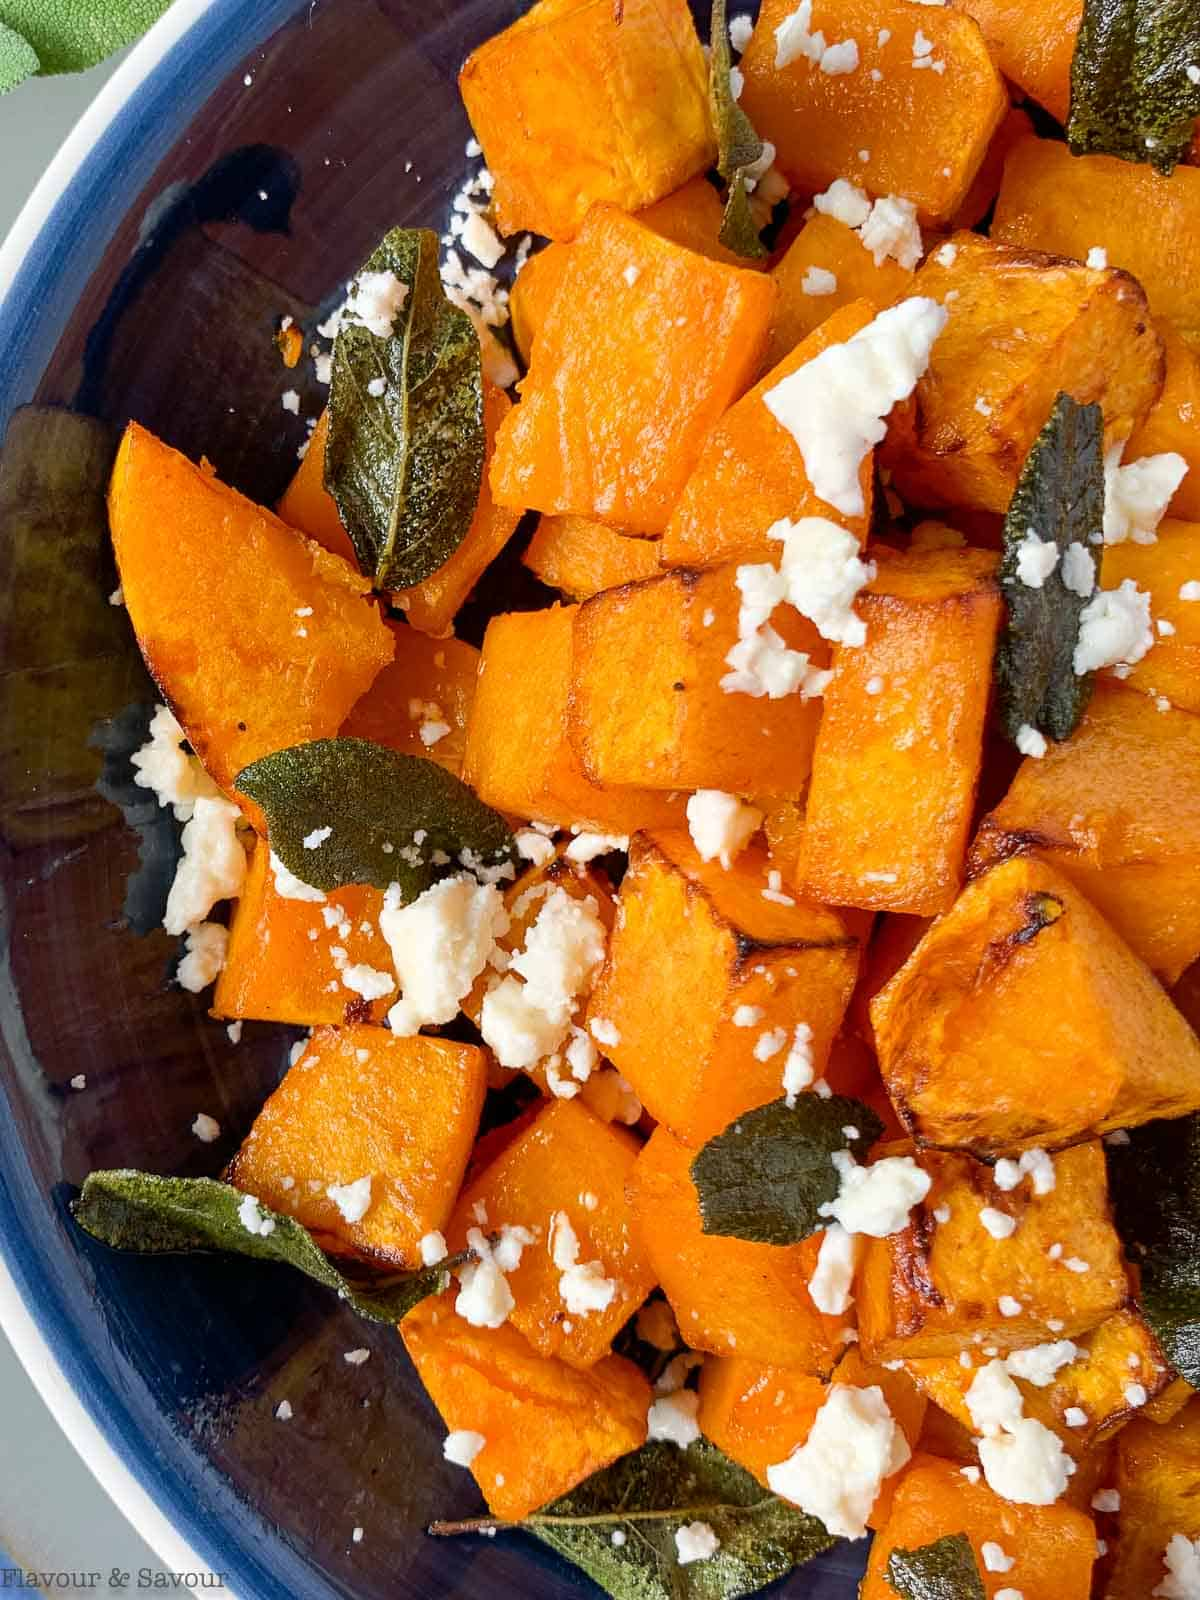 close up view of Butternut squash cubes in a blue bowl with feta cheese and sage leaves